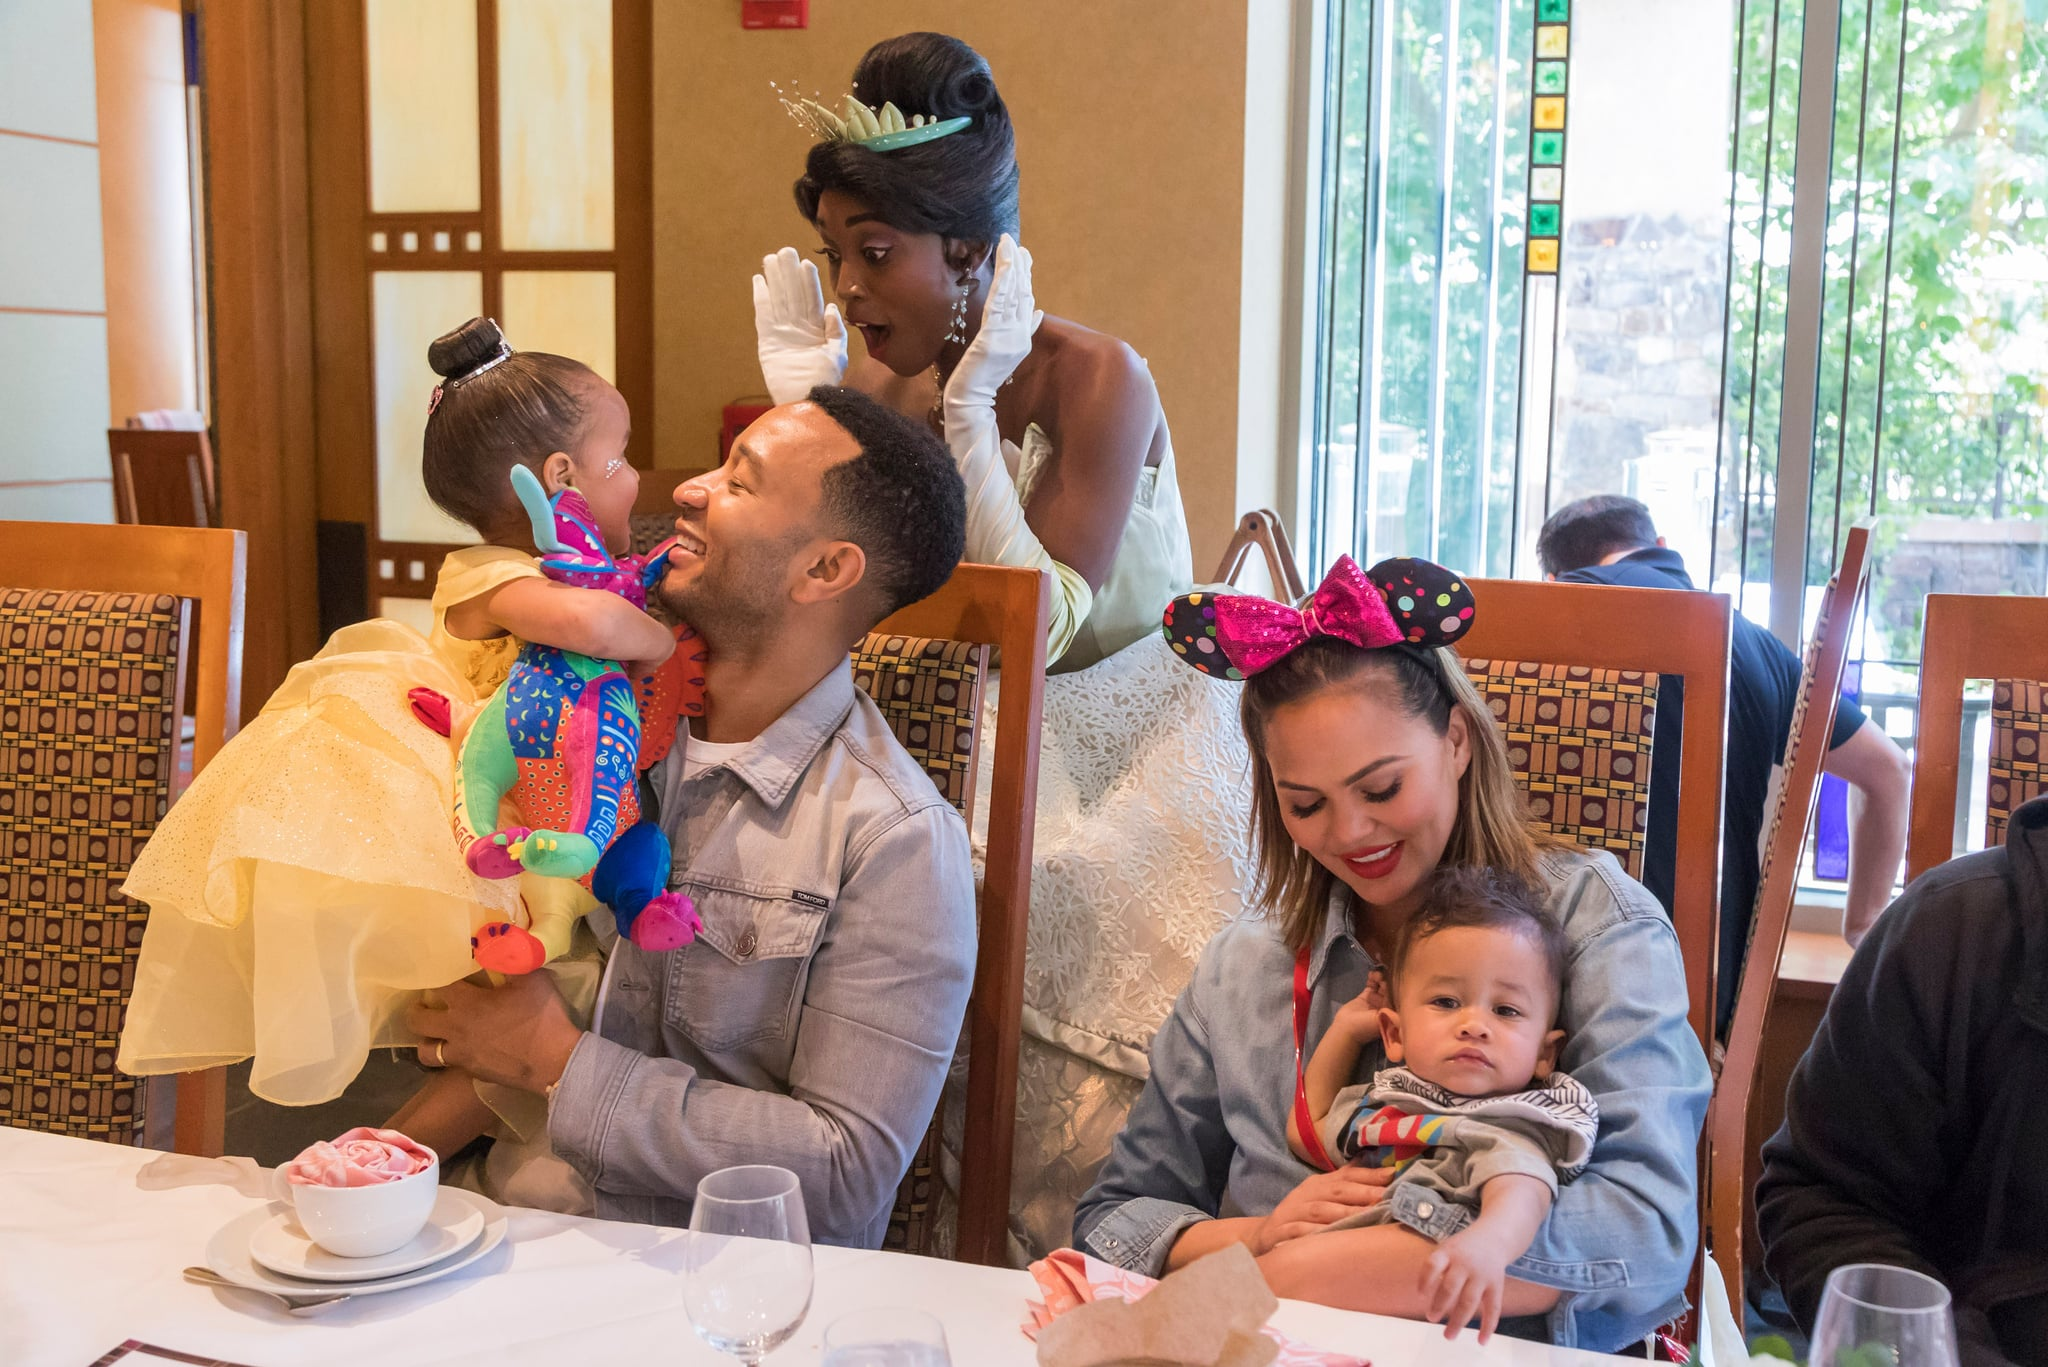 ANAHEIM, CALIFORNIA - APRIL 12: In this handout image, John Legend, Chrissy Teigen, their daughter Luna and son Miles share a moment with Princess Tiana during the Disney Princess Breakfast Adventures at Disney's Grand Californian Hotel on April 12, 2019 in Anaheim, California. (Photo by Joshua Sudock/Disneyland Resort via Getty Images)